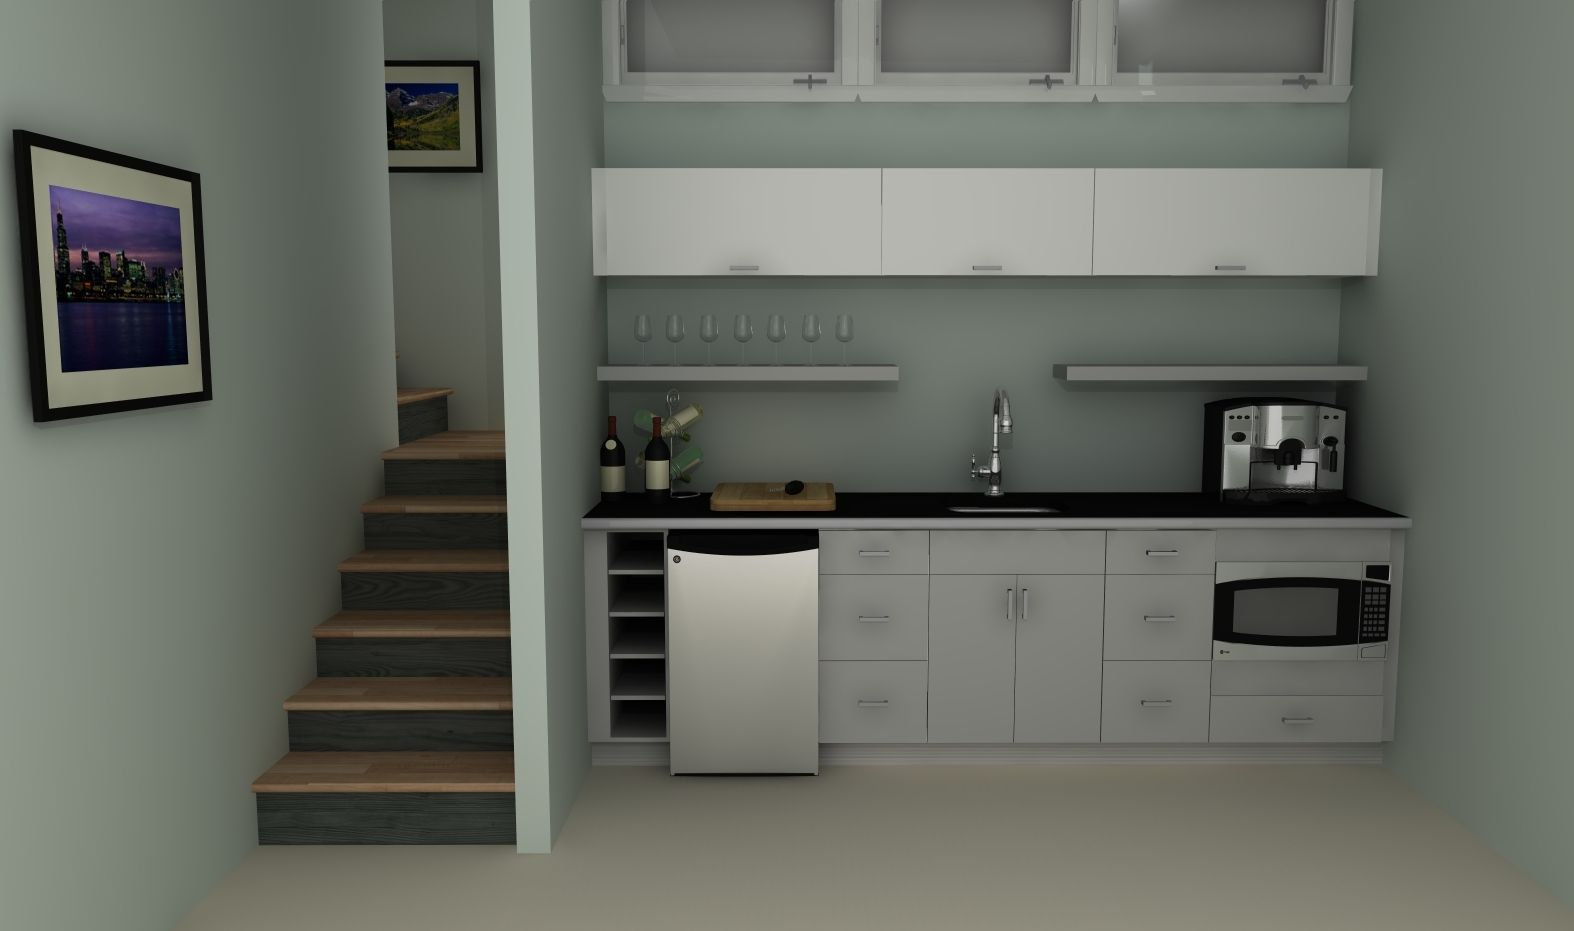 An Ikea Basement Kitchenette With High Gloss Doors In Abstrakt White Kitchens Pinterest